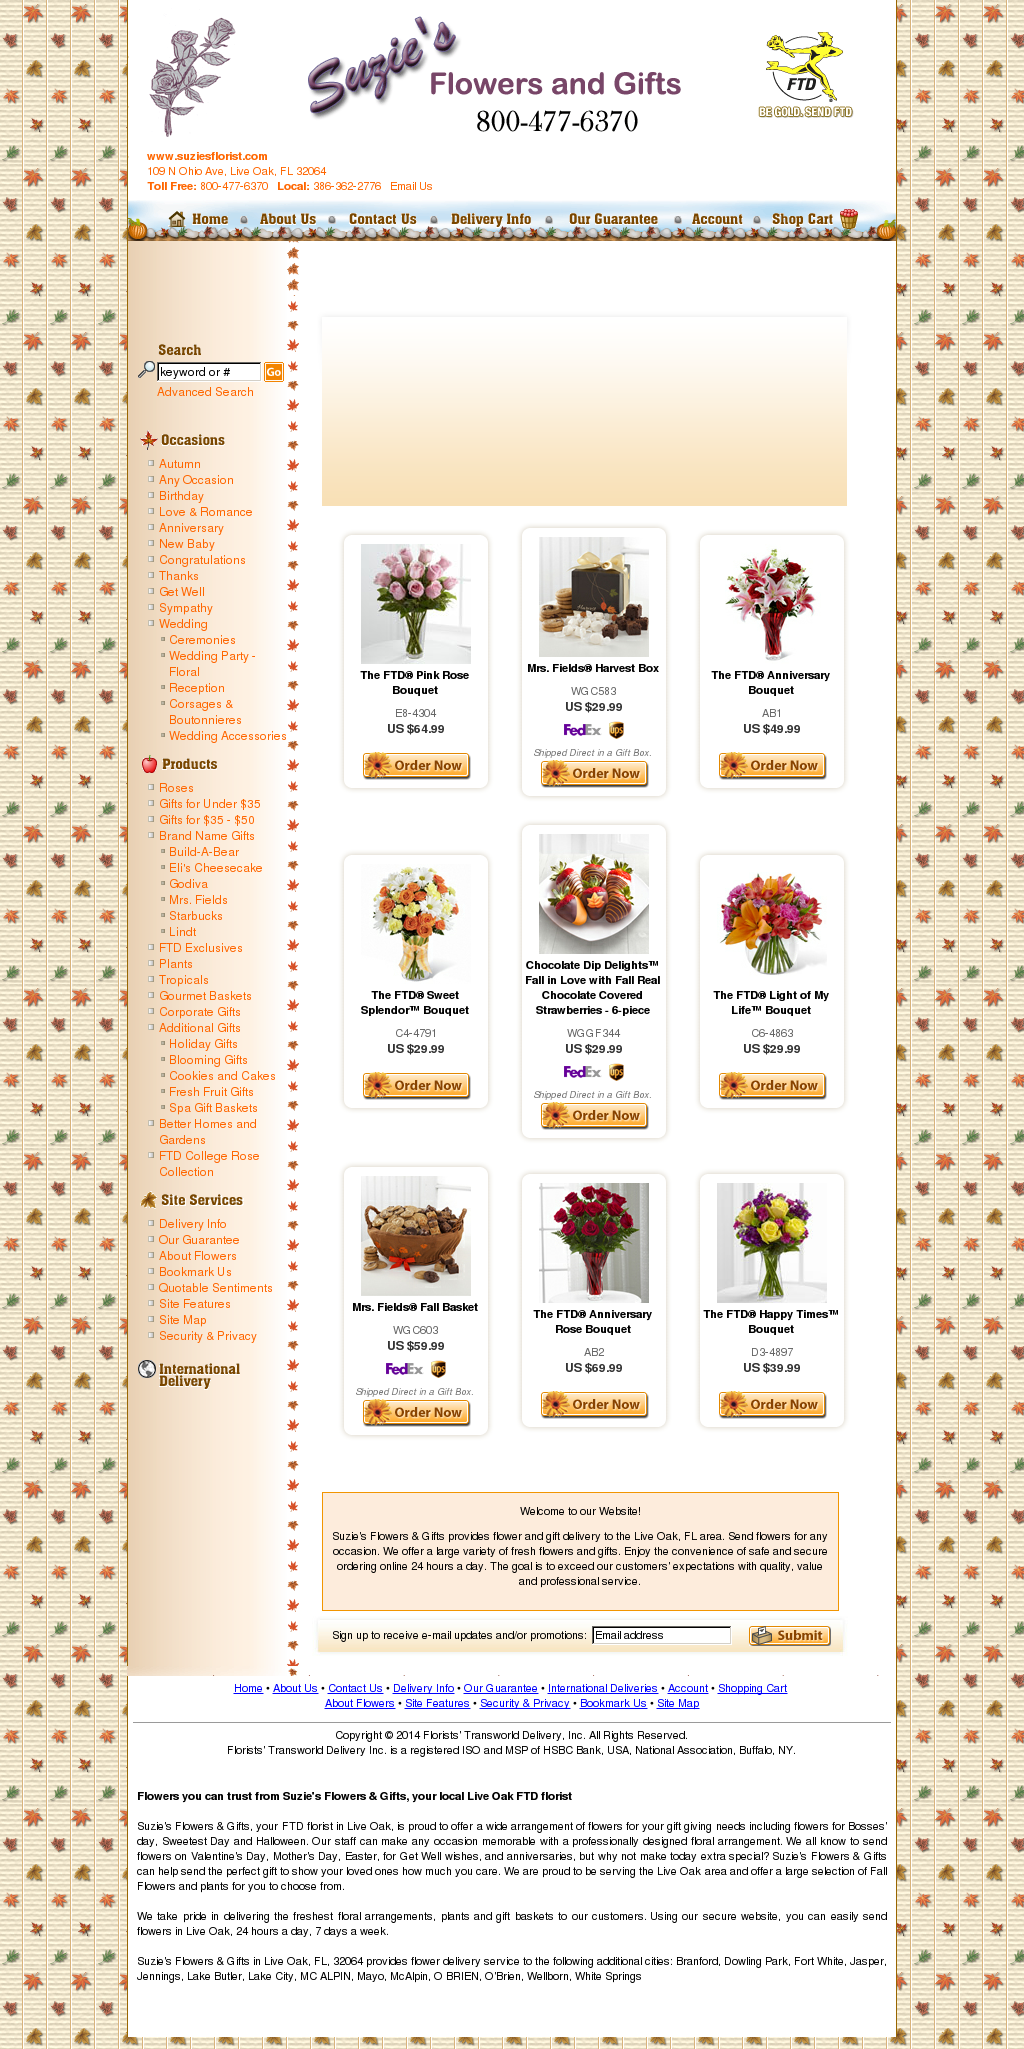 Suzie's Flowers and Gifts Competitors, Revenue and Employees